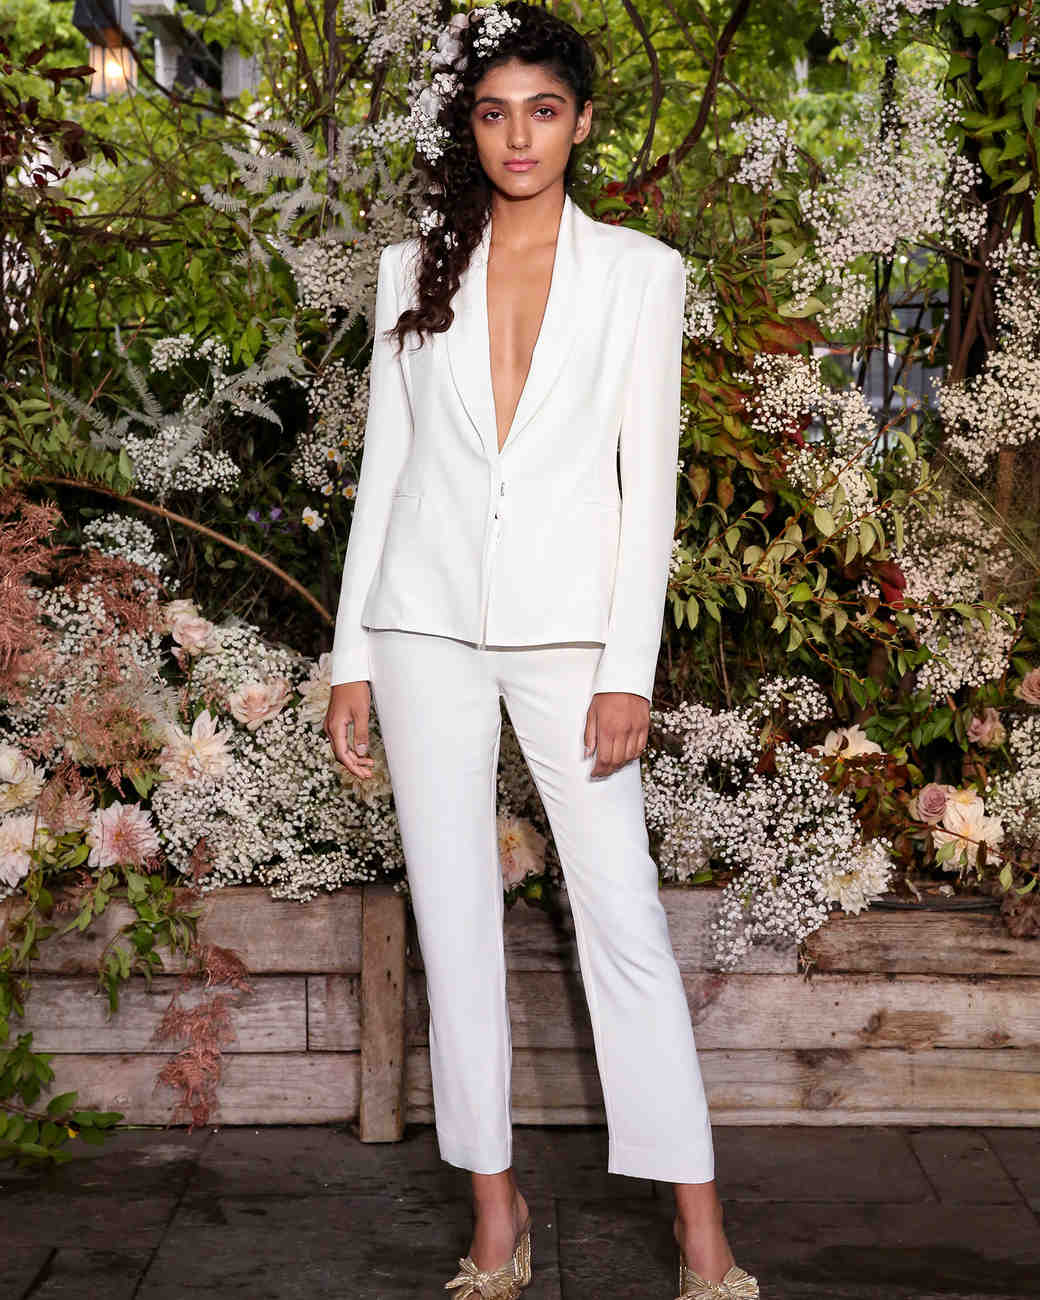 e72d9d83f96 alexandra grecco wedding cropped pantsuit plunging neck